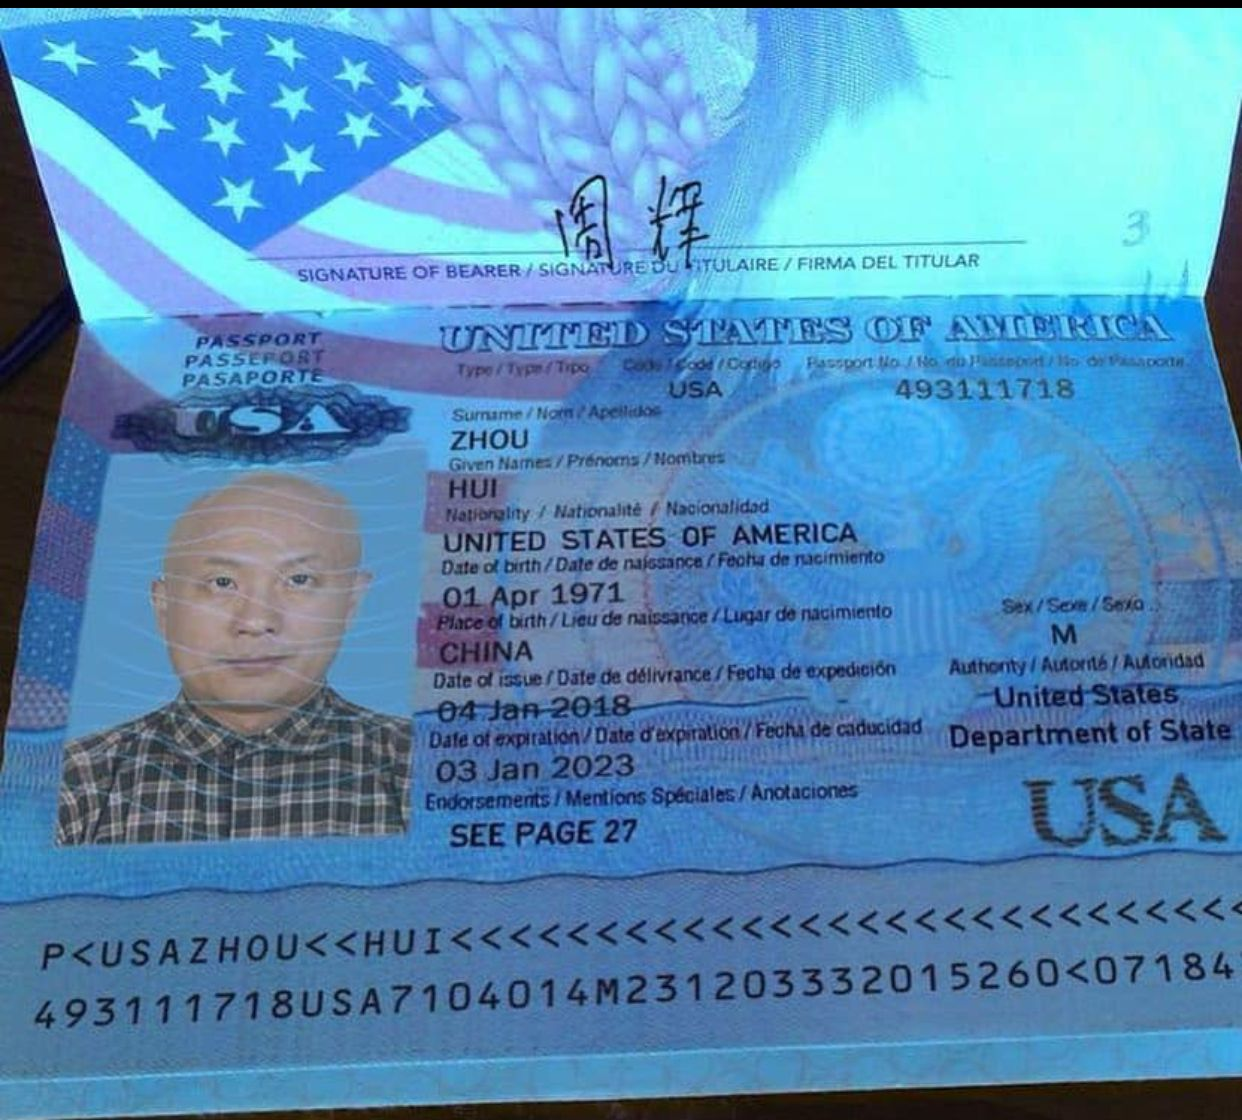 It S No Doubt The American Passport Is One Of The Most